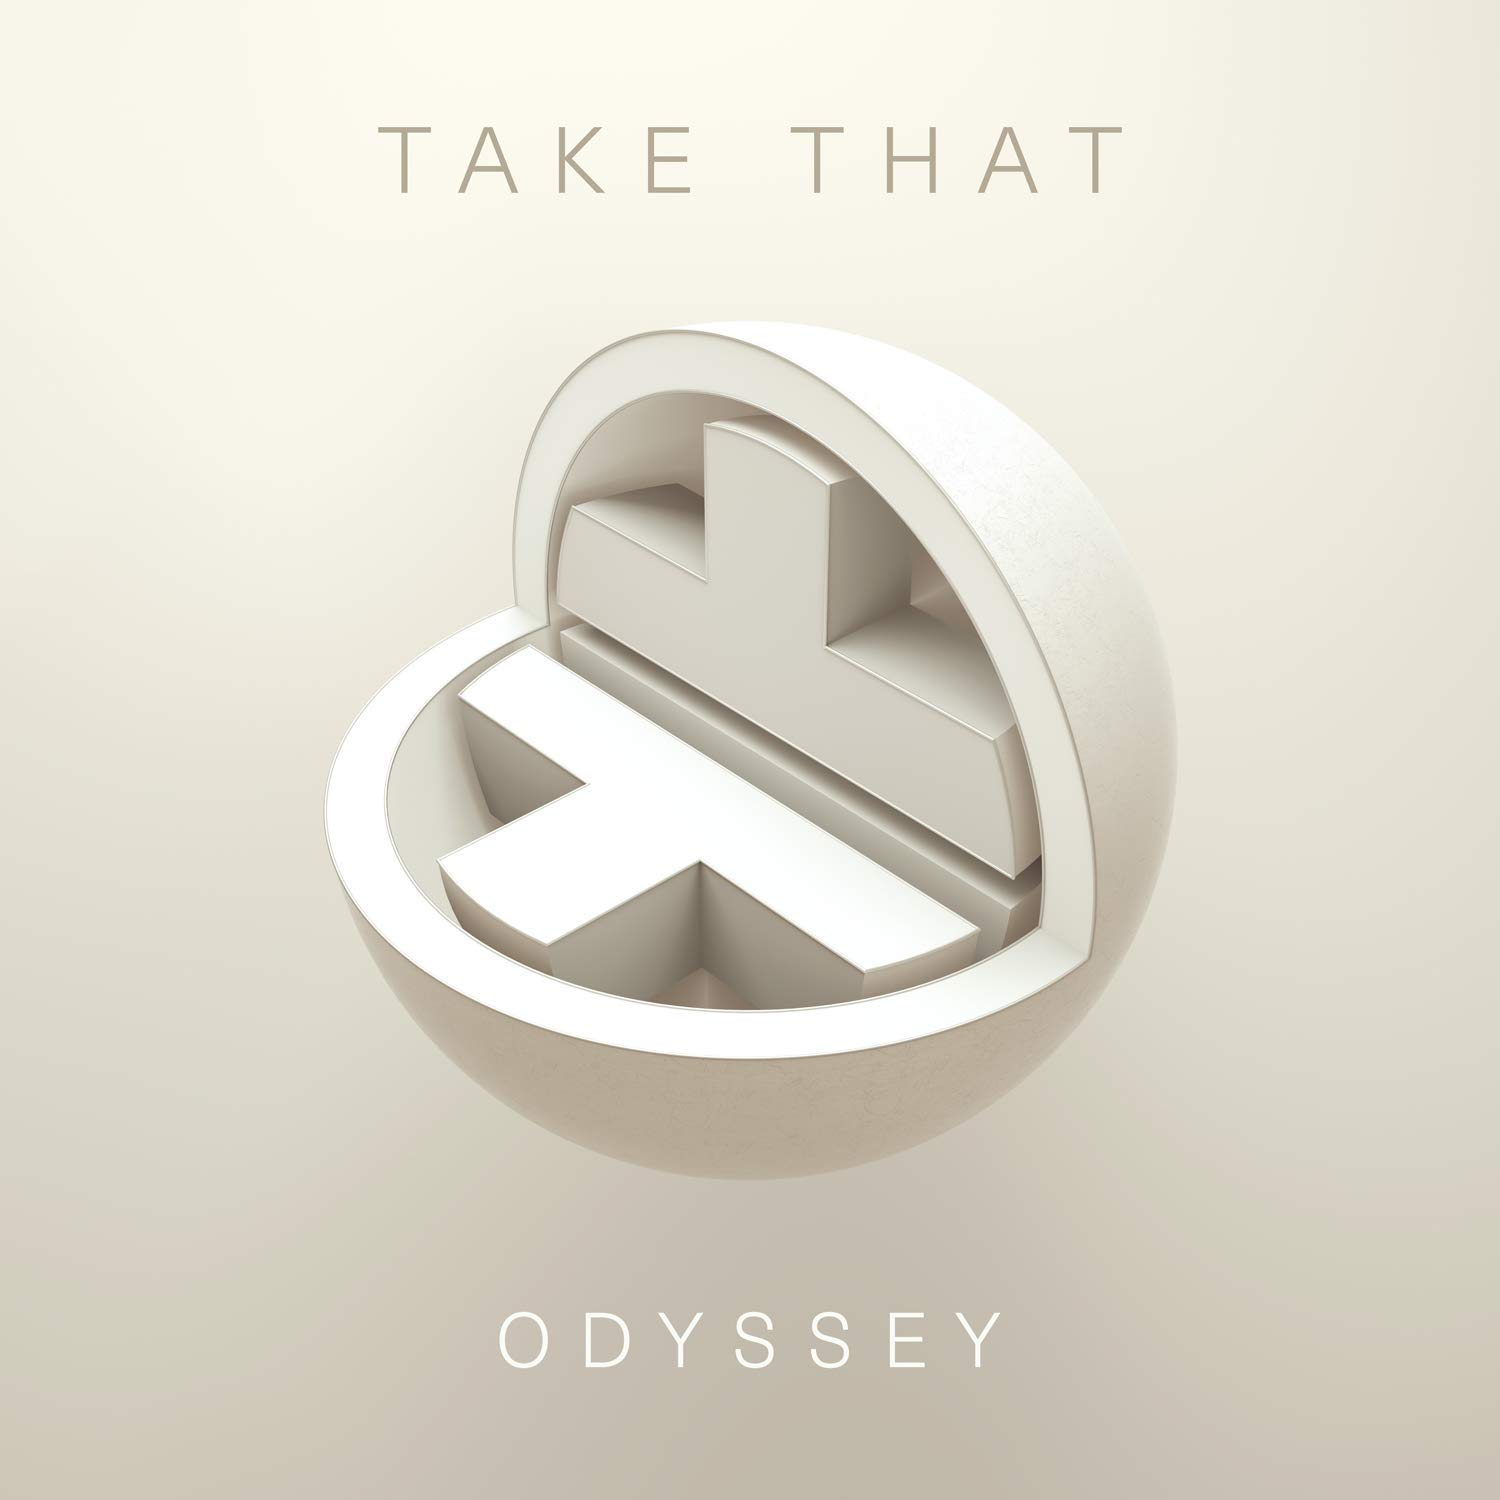 CD Shop - TAKE THAT ODYSSEY